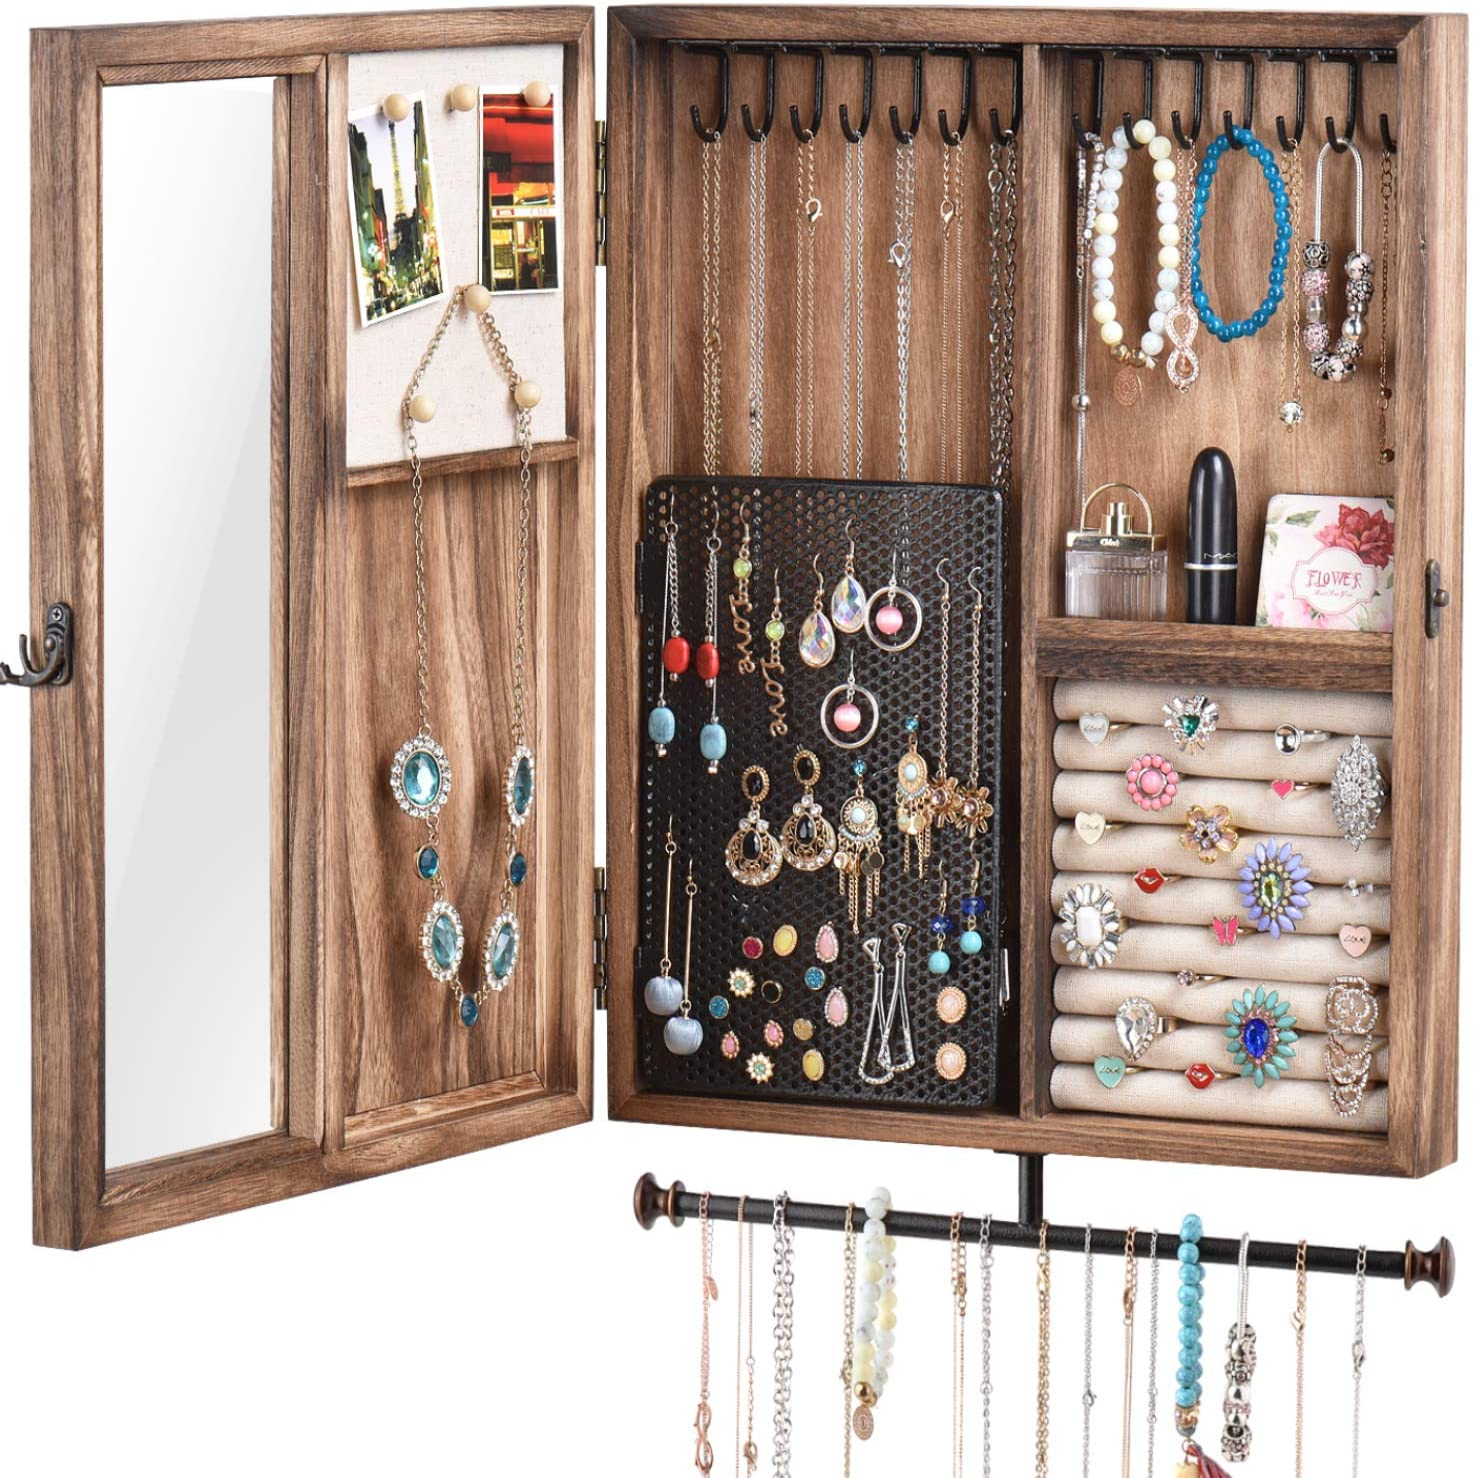 Amazon Com Keebofly Wall Mounted Jewelry Organizer Box Rustic Wood Large Space Cabinet Holder For Necklaces Earrings Bracelets Ring And Accessories Carbonized Black Home Improvement